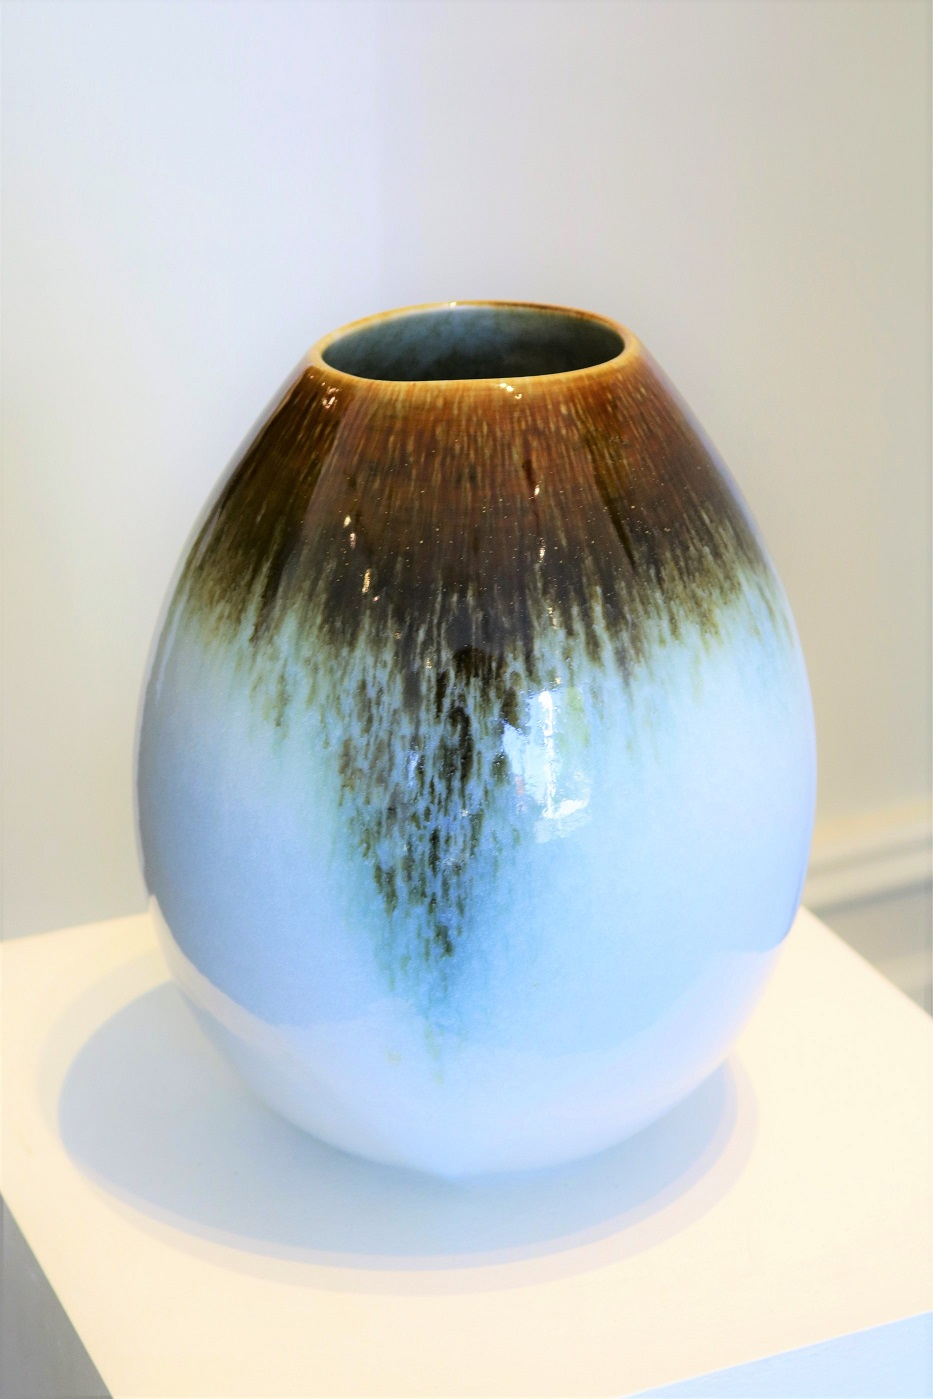 Brian Keyte,  Teardrop,  stoneware, temoku and salted chun glazes, H 25 x W18.5cm 2018 AVAILABLE